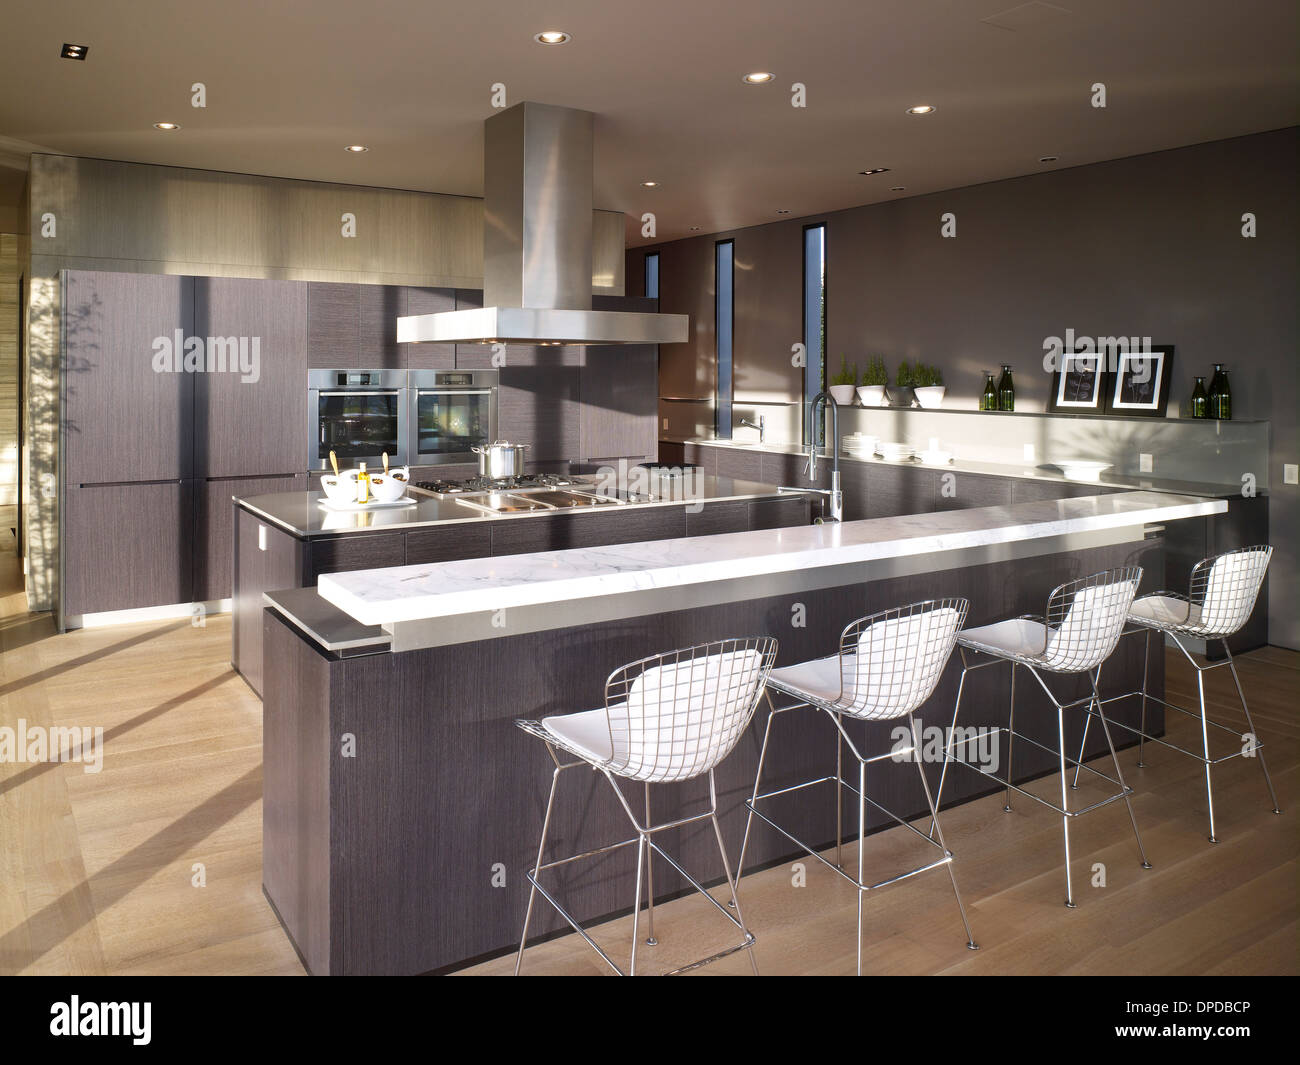 Bar stools at breakfast bar in luxury kitchen nightingale for Luxury breakfast bar stools